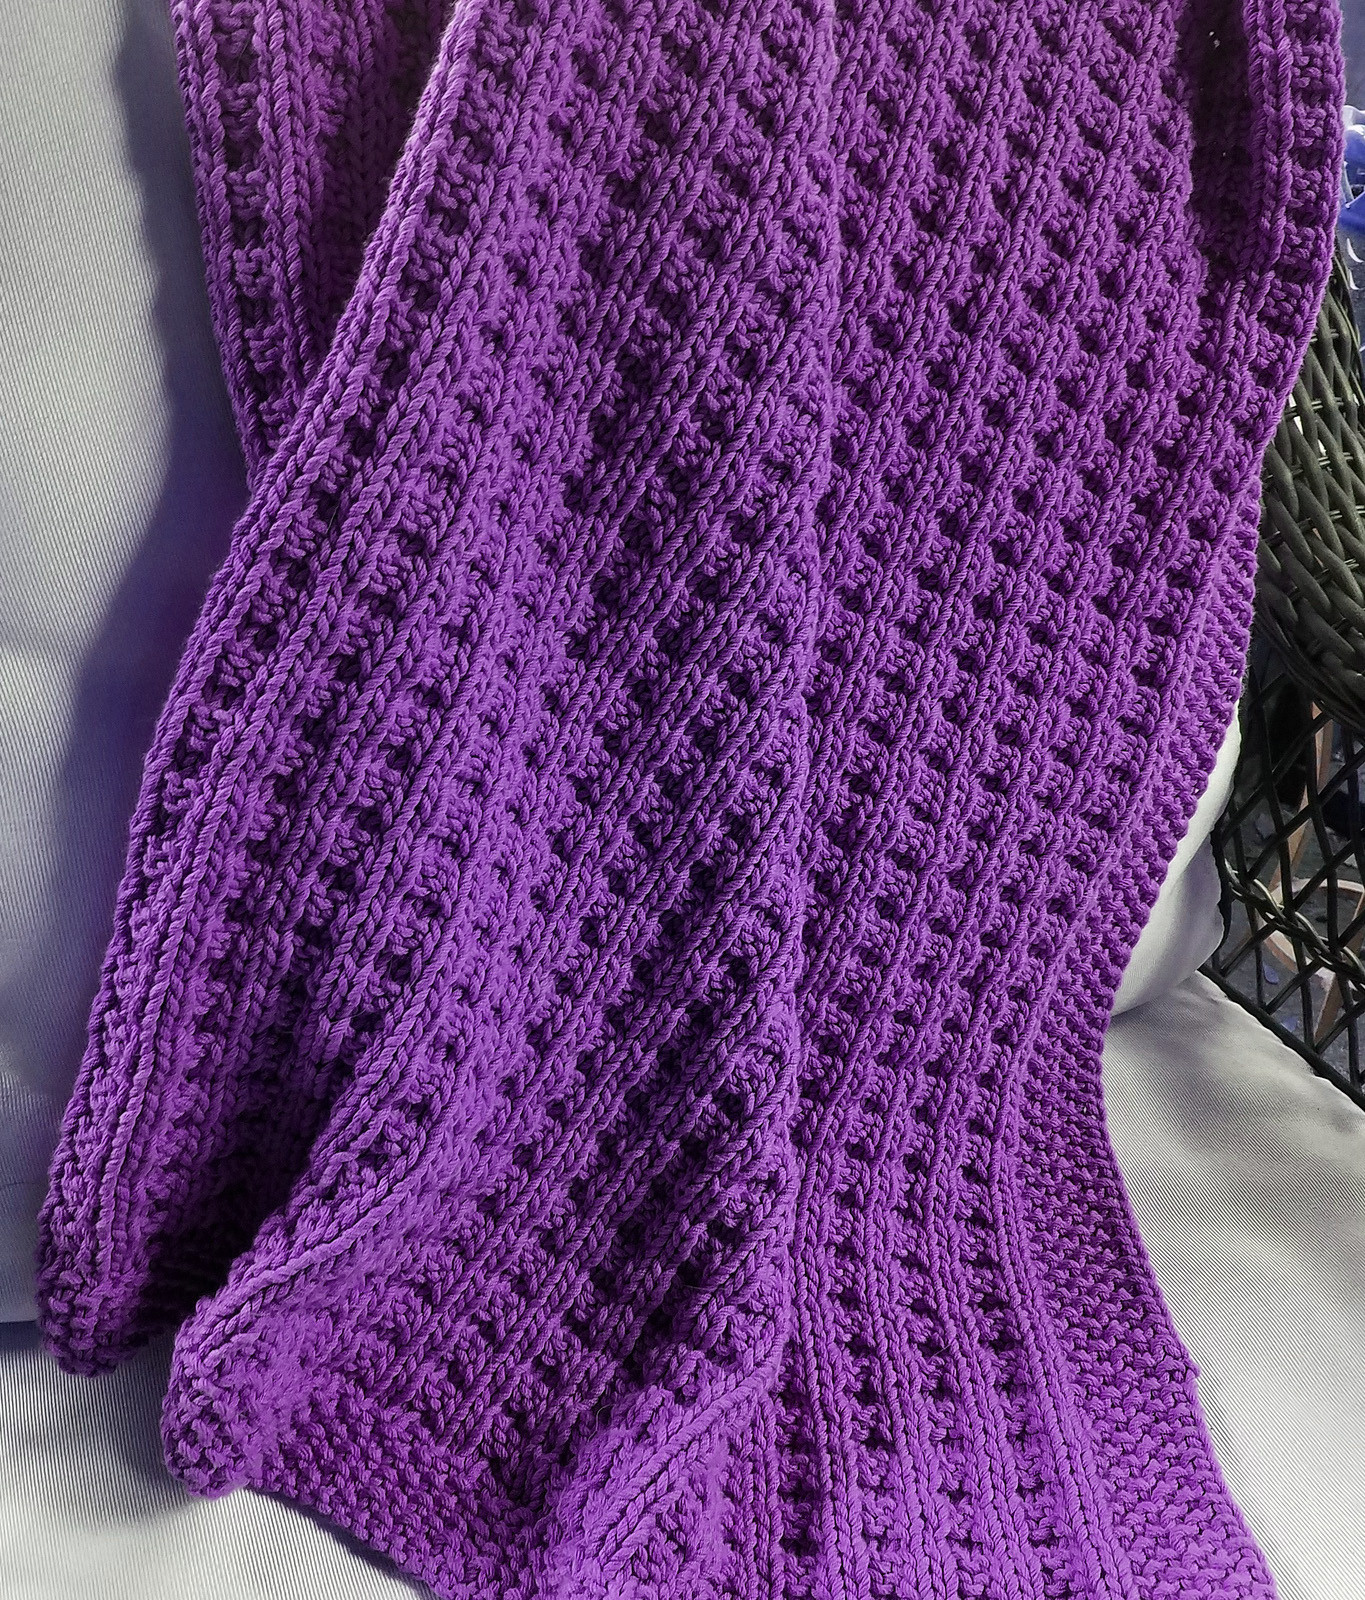 Blanket Patterns Inspirational Quick Baby Blanket Knitting Patterns Of Fresh 49 Pics Blanket Patterns